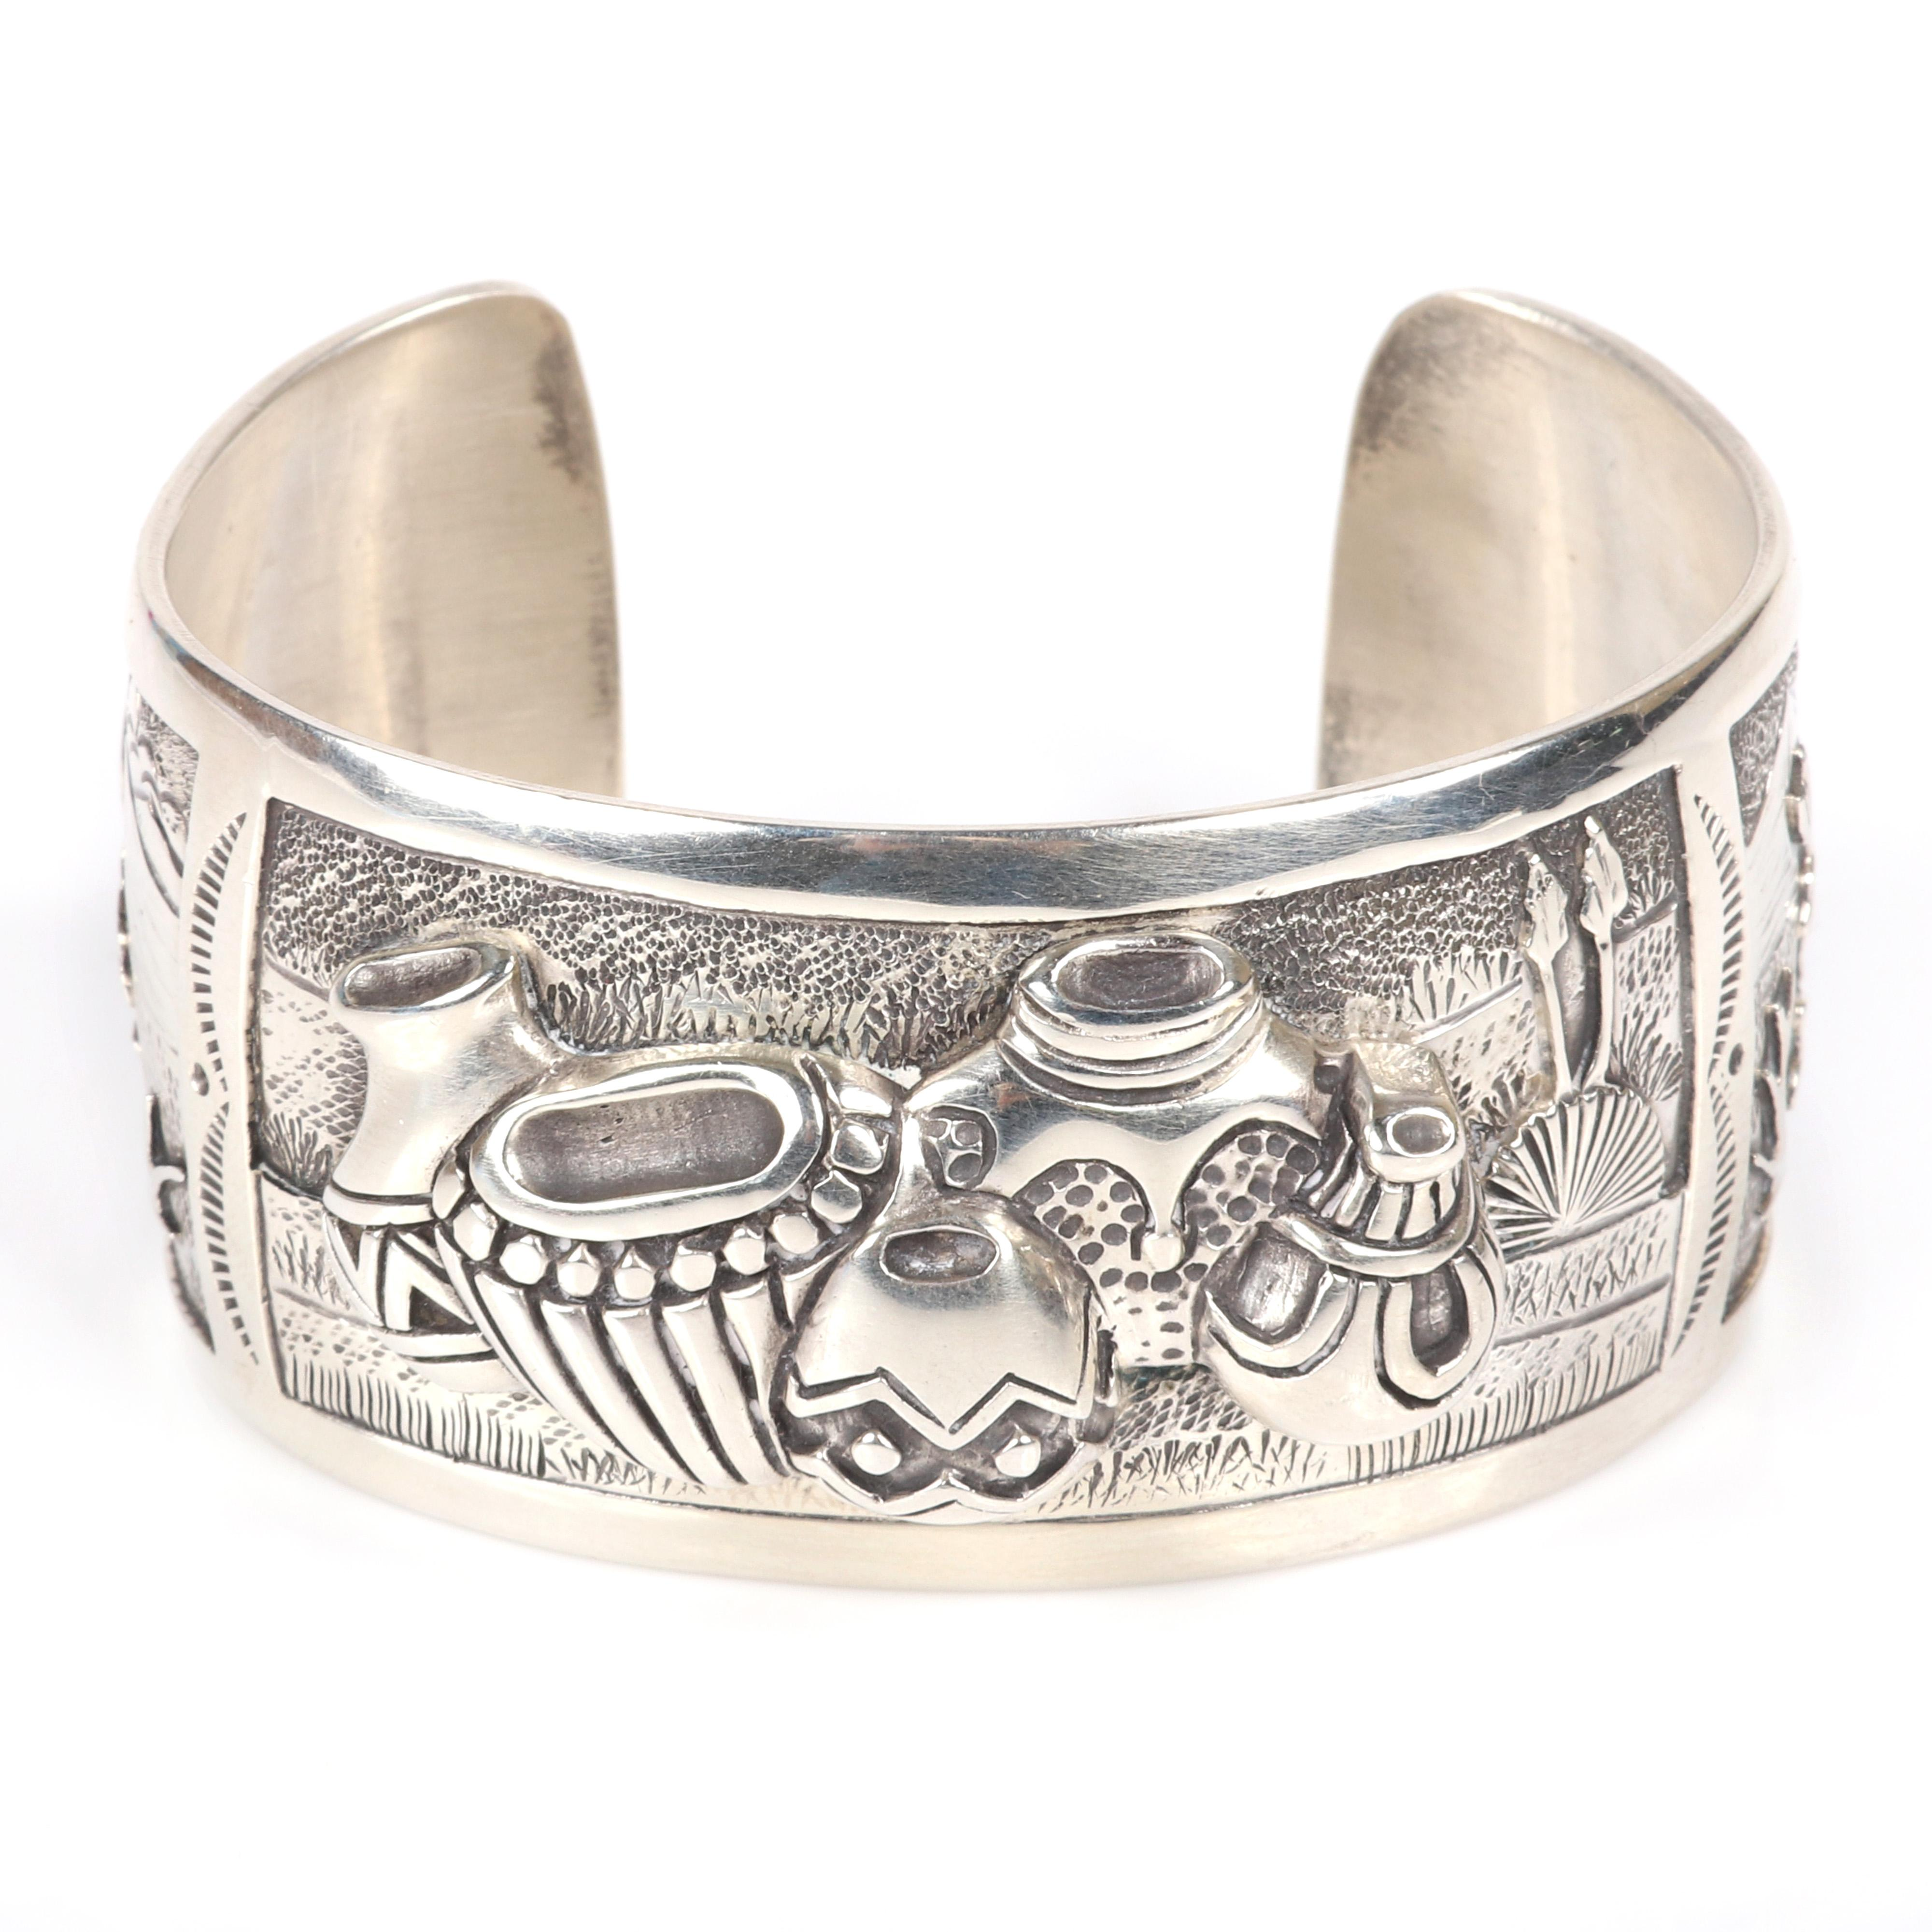 """Ray Calladitto Native American Indian Navajo sterling silver cuff bracelet with three scenic panels featuring pottery jars cast in high relief, and flanking eagle scenes. 2 1/4""""diam, 1 1/4""""W"""